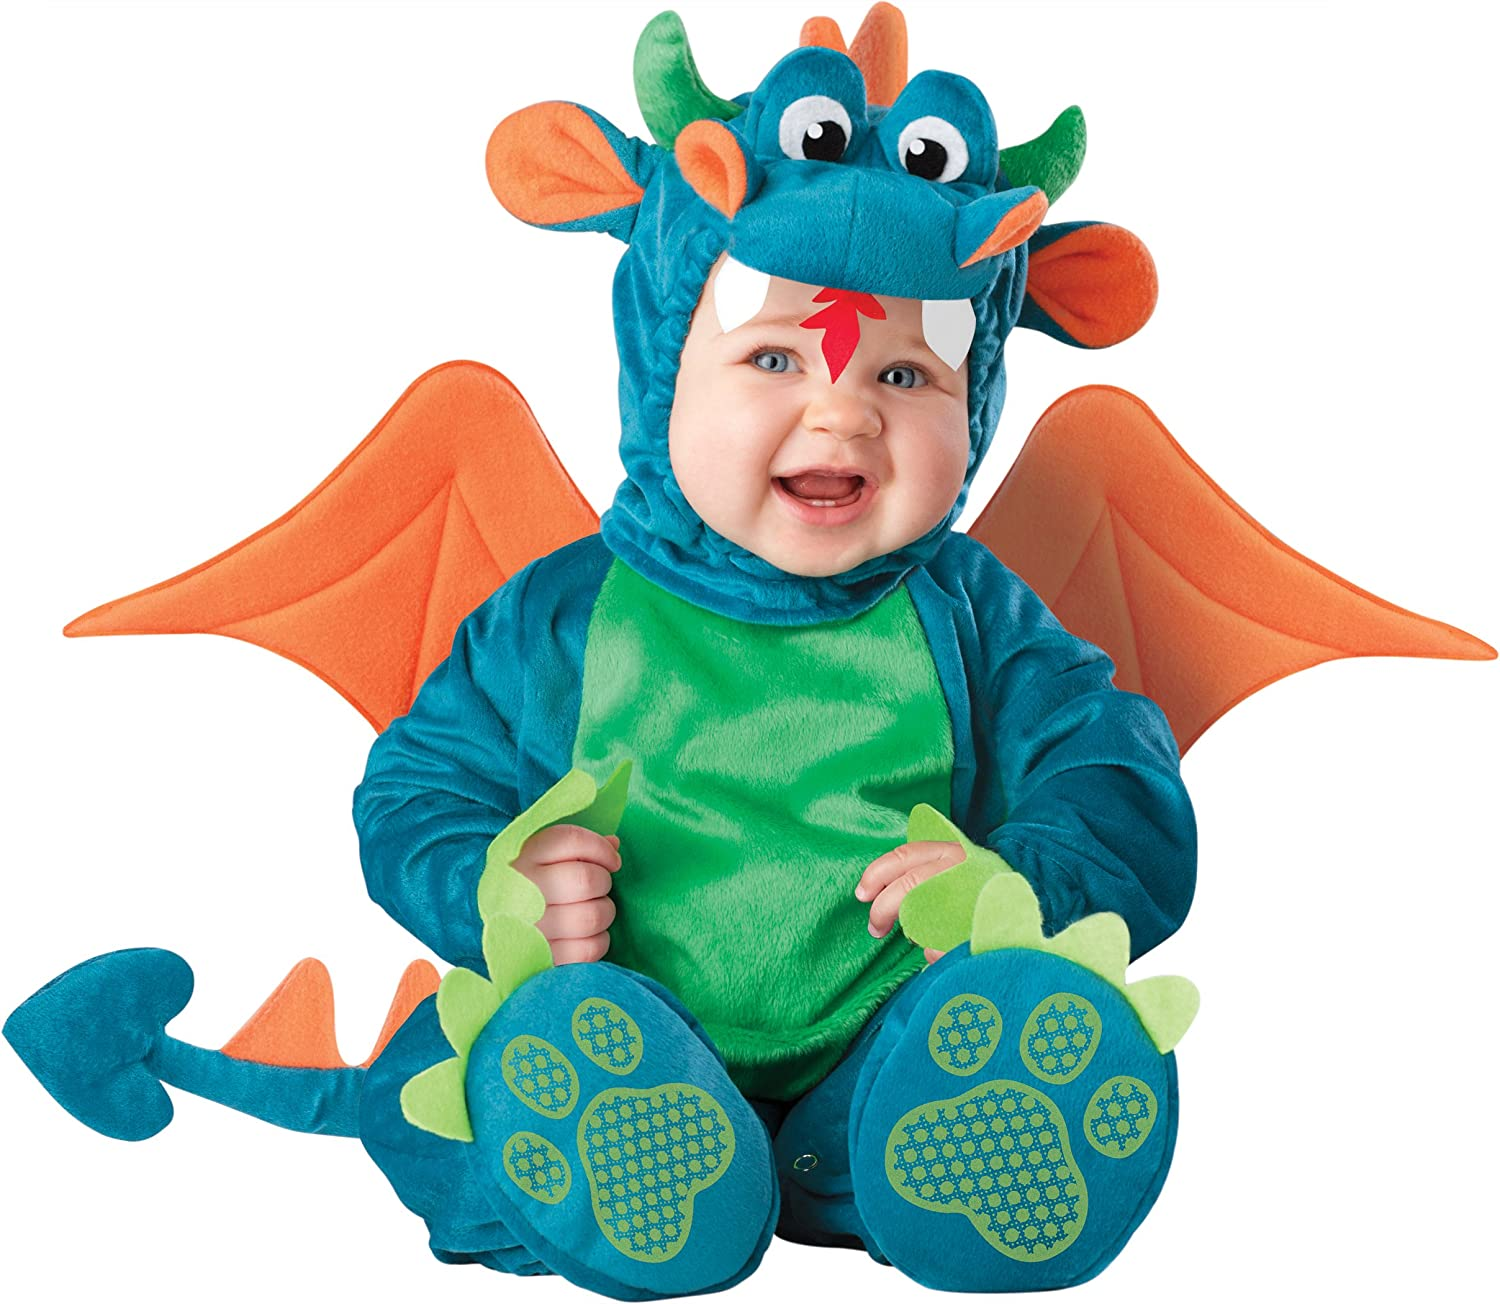 Suesses und qualitatives Baby-Drache Kostuem Gr. 86-92 = Groesse Large Incharacter 6032i